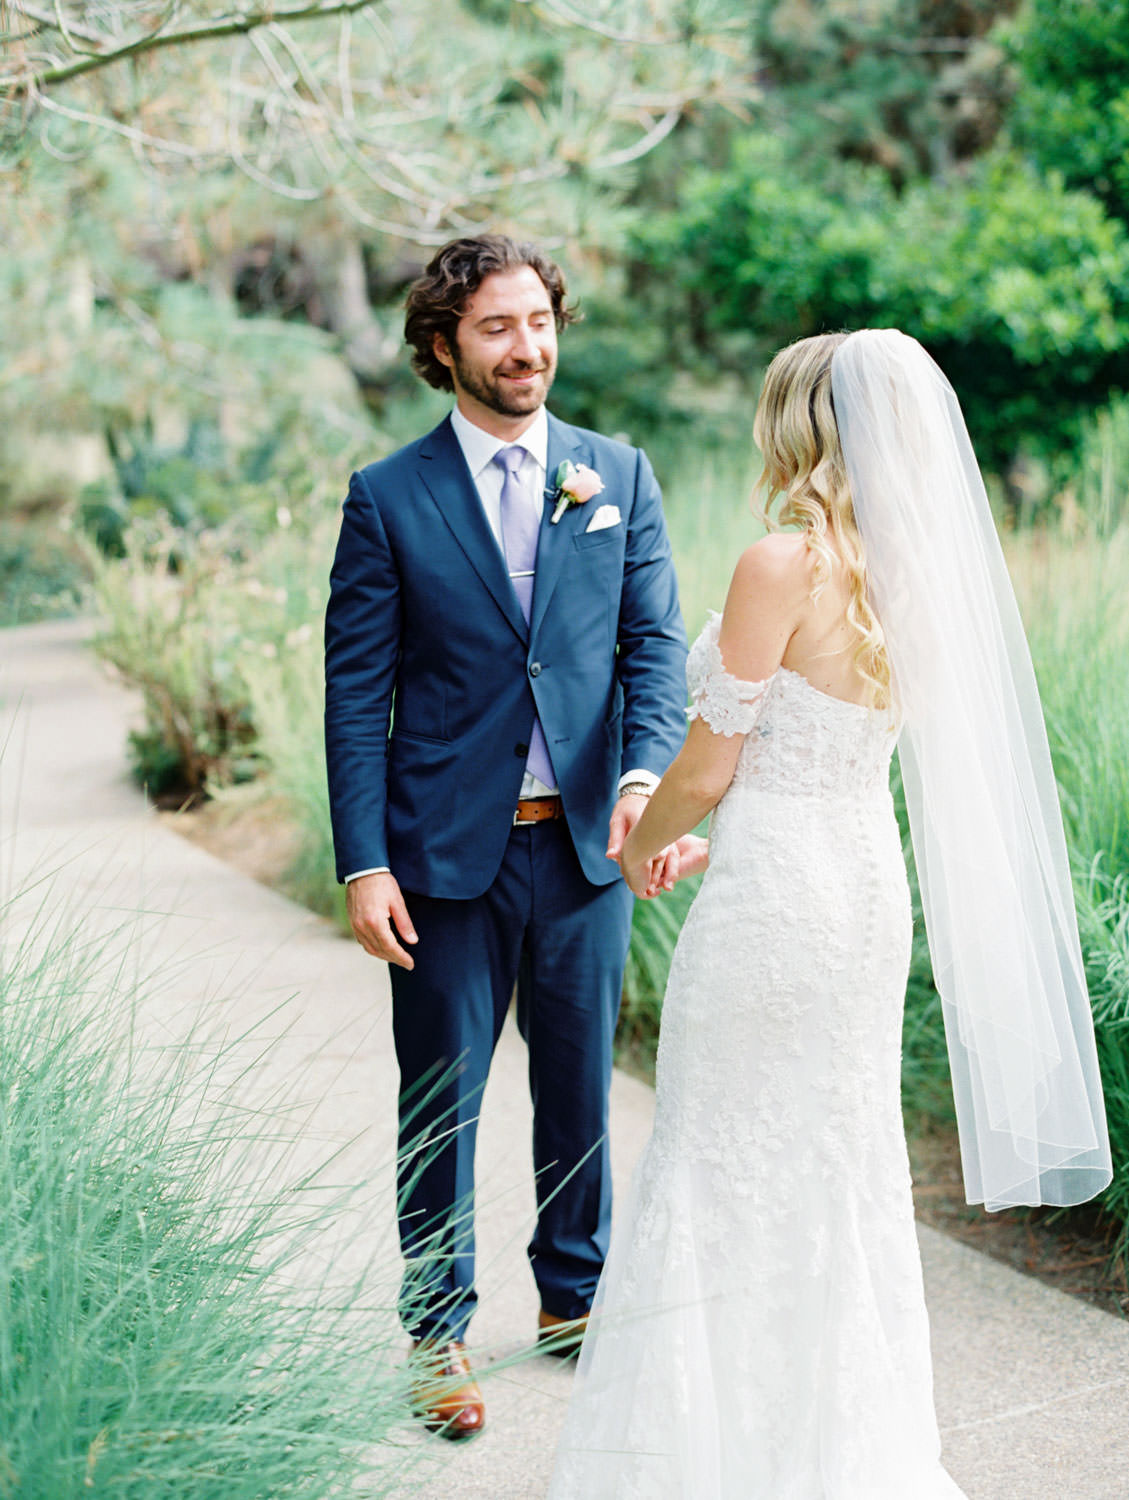 Bride in Pronovias off shoulder lace gown walking toward groom for first look and his reaction, Lodge at Torrey Pines wedding, film photography by Cavin Elizabeth Photography